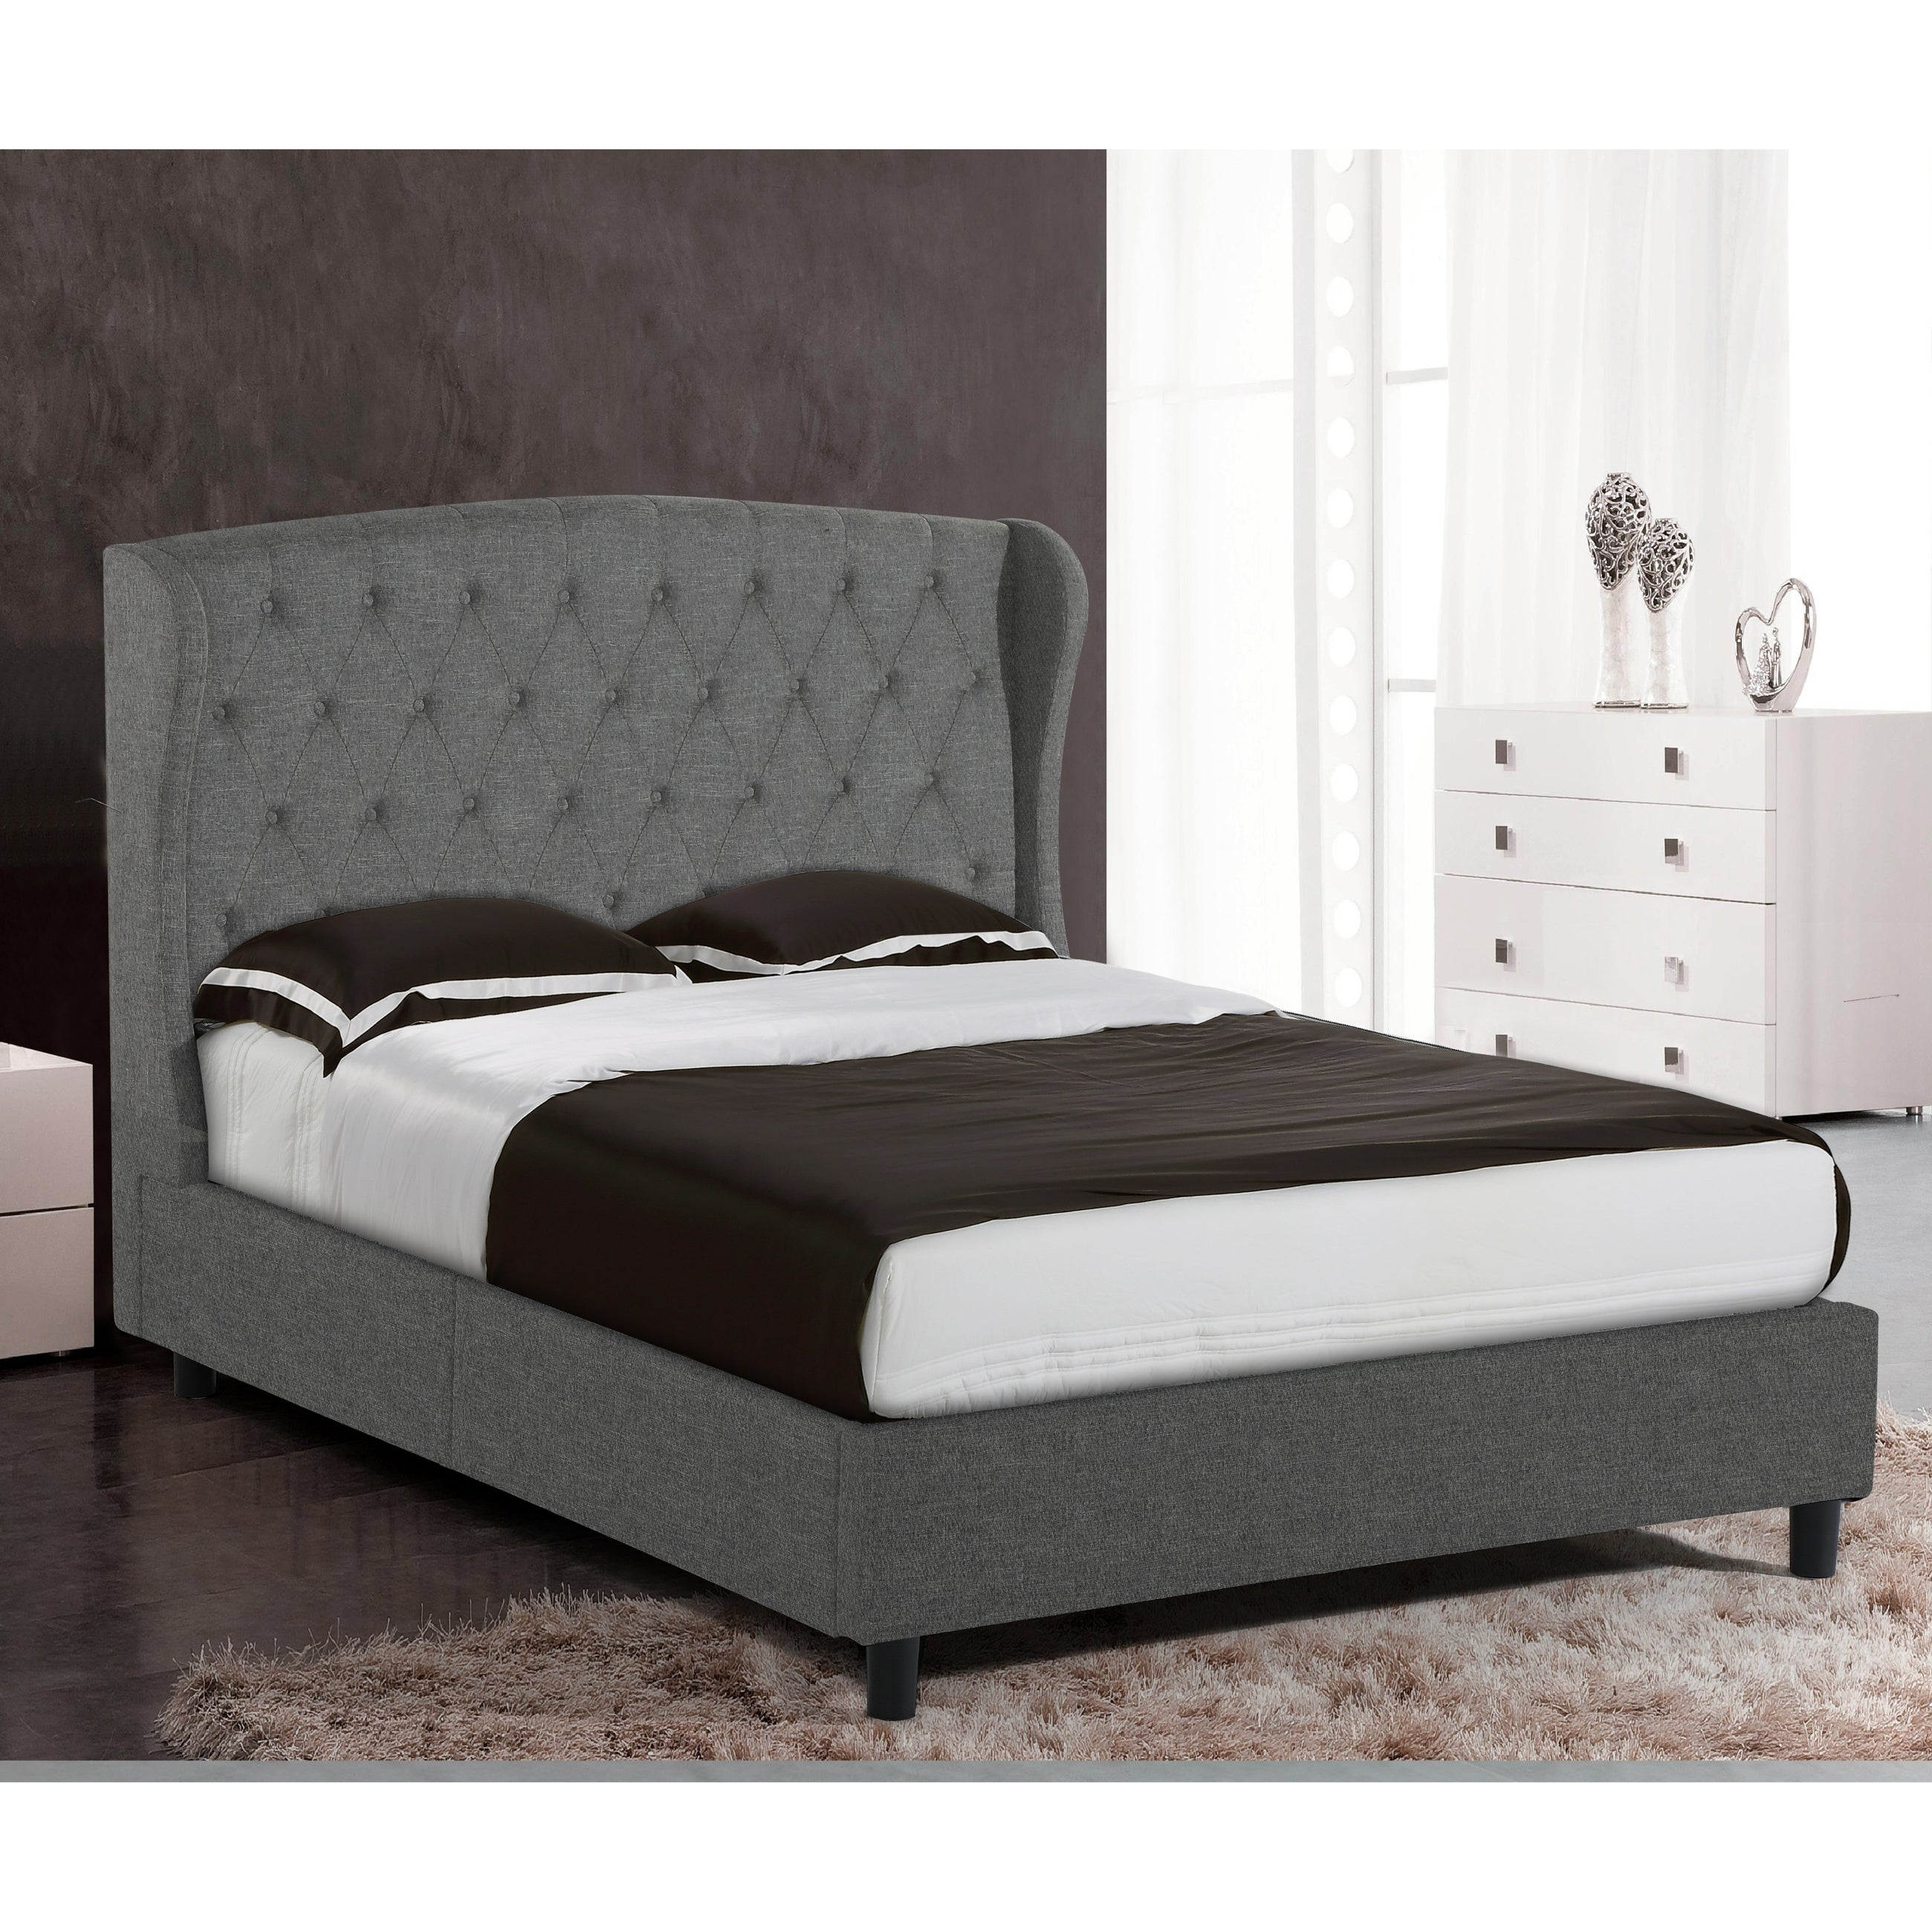 Alka Dark Grey Upholstered Platform Bed With Wings And Button Stitching Accent Queen Size Overstock 22079841